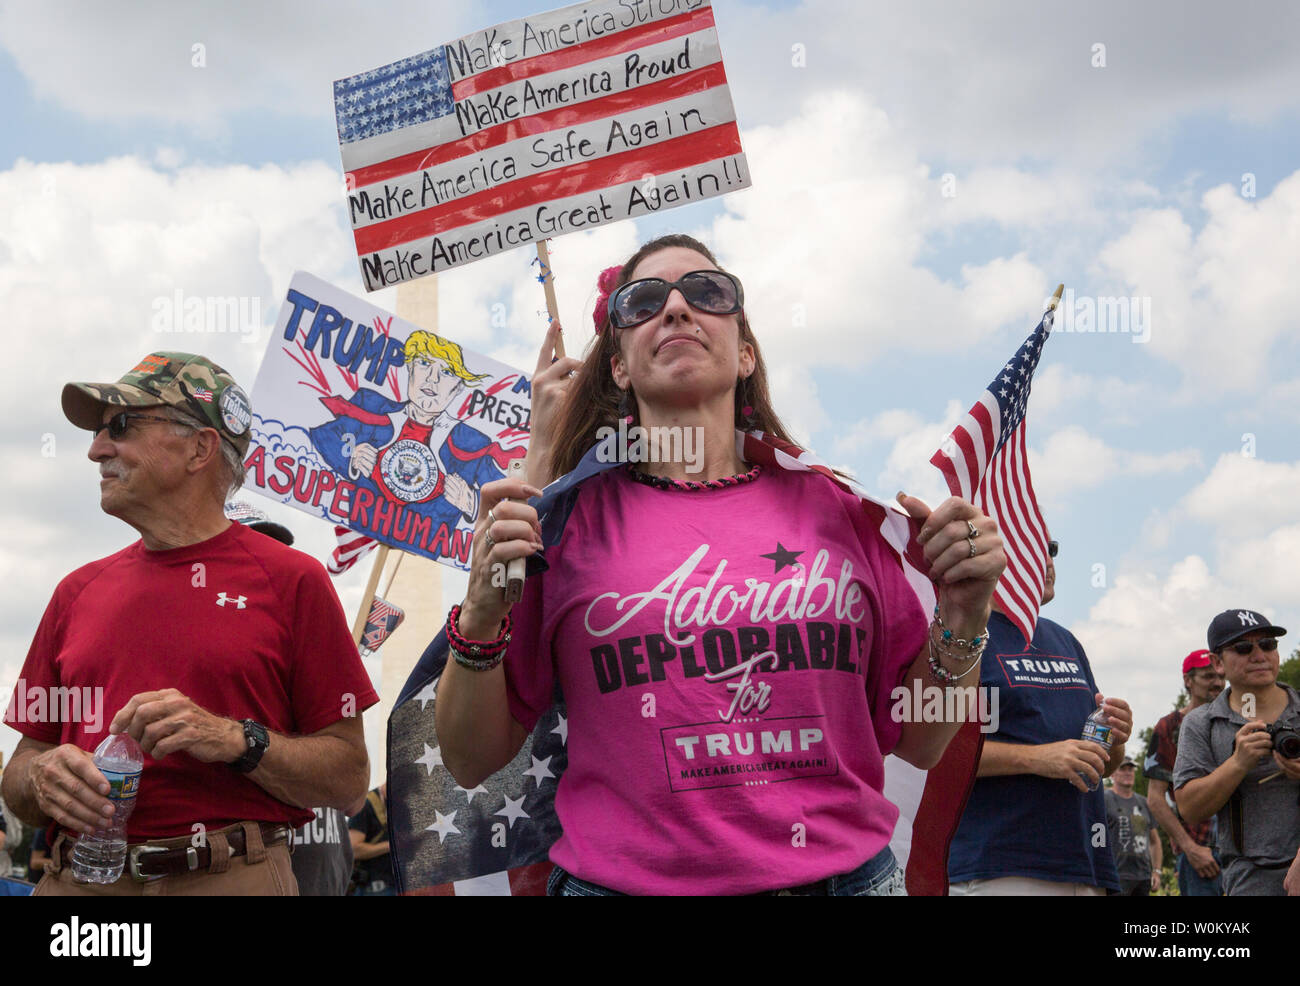 Pro-trump supporters rally on the National Mall during the 'Mother of All Rallies' event in Washington, DC on September 16, 2017. The event was held to show support for President Trump and his agenda. Photo by Erin Schaff/UPI Stock Photo